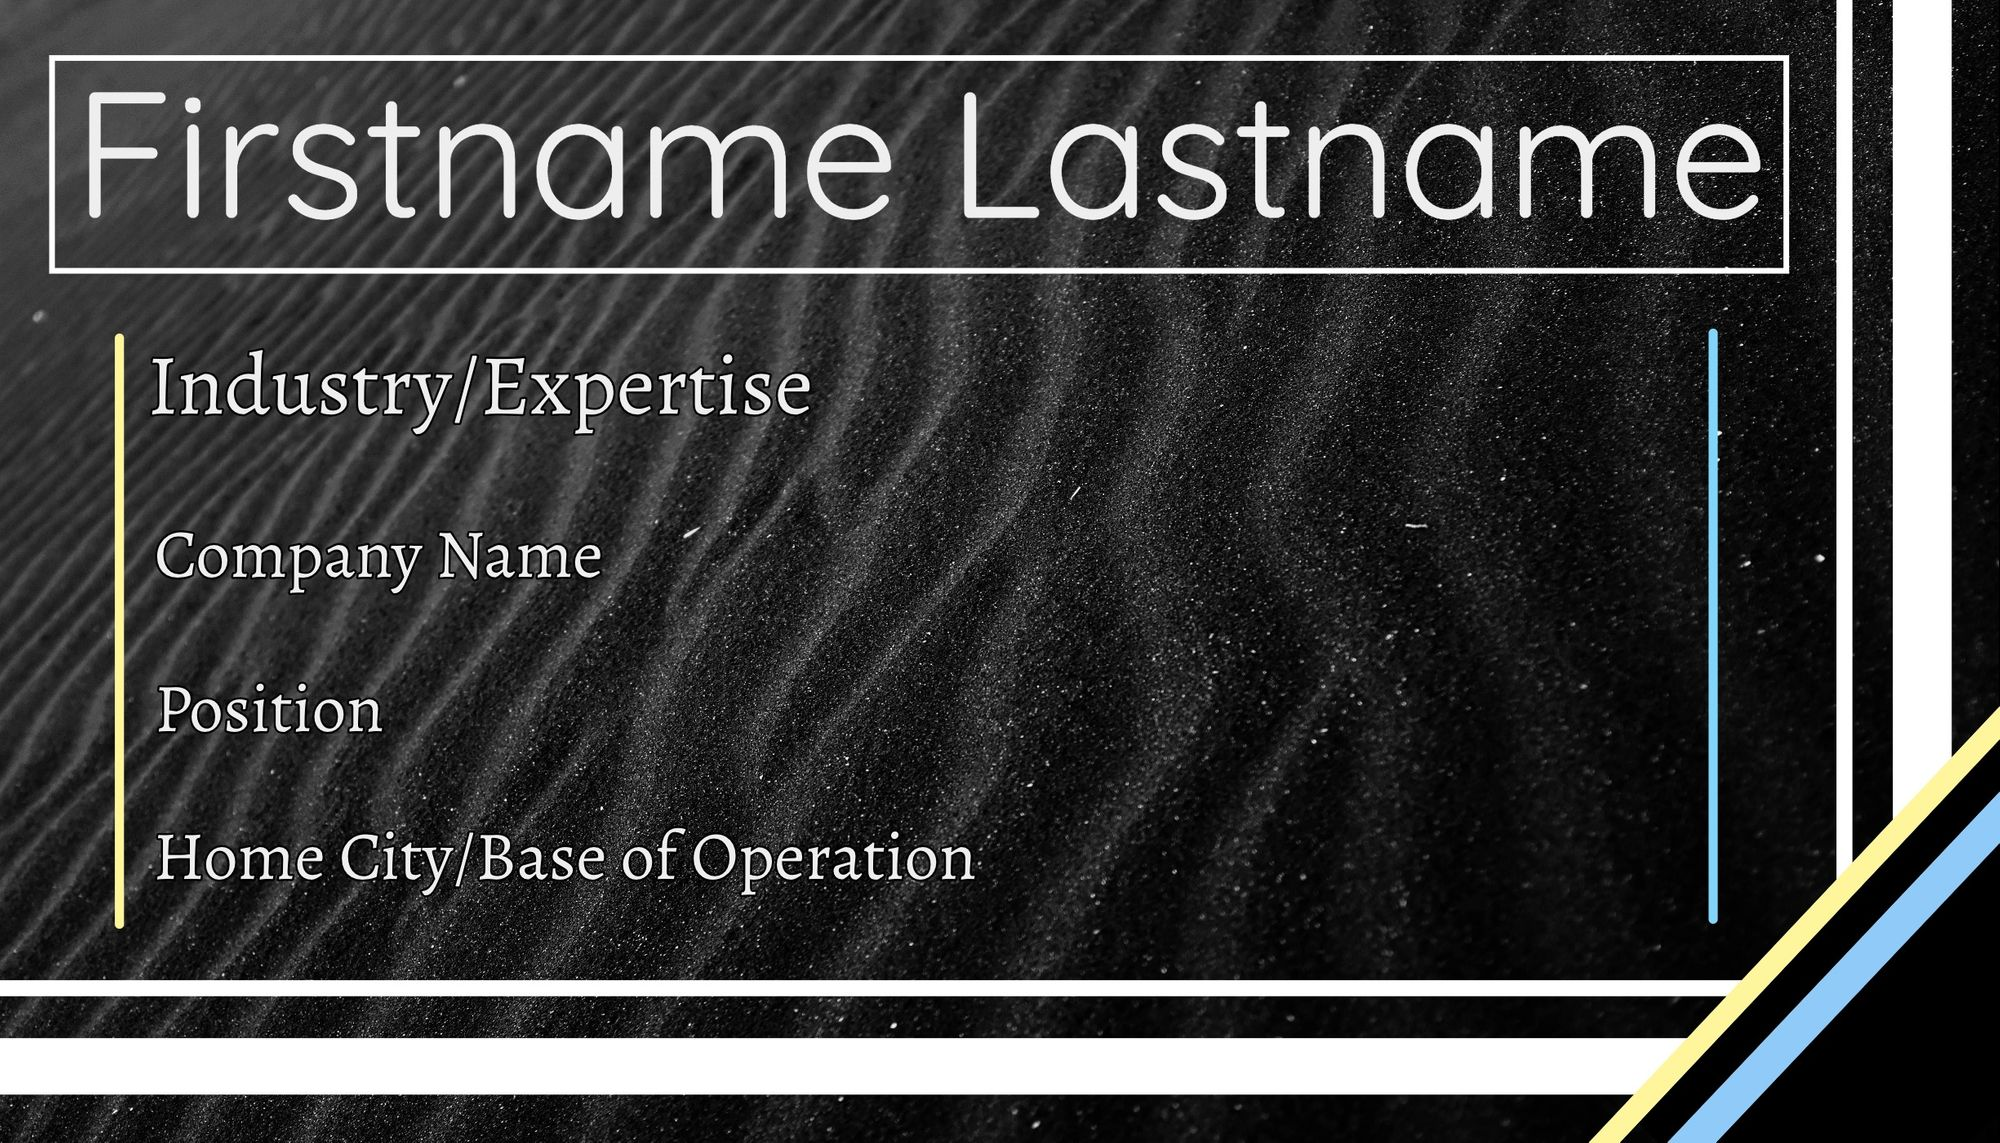 The first business card template, with a black sand background.